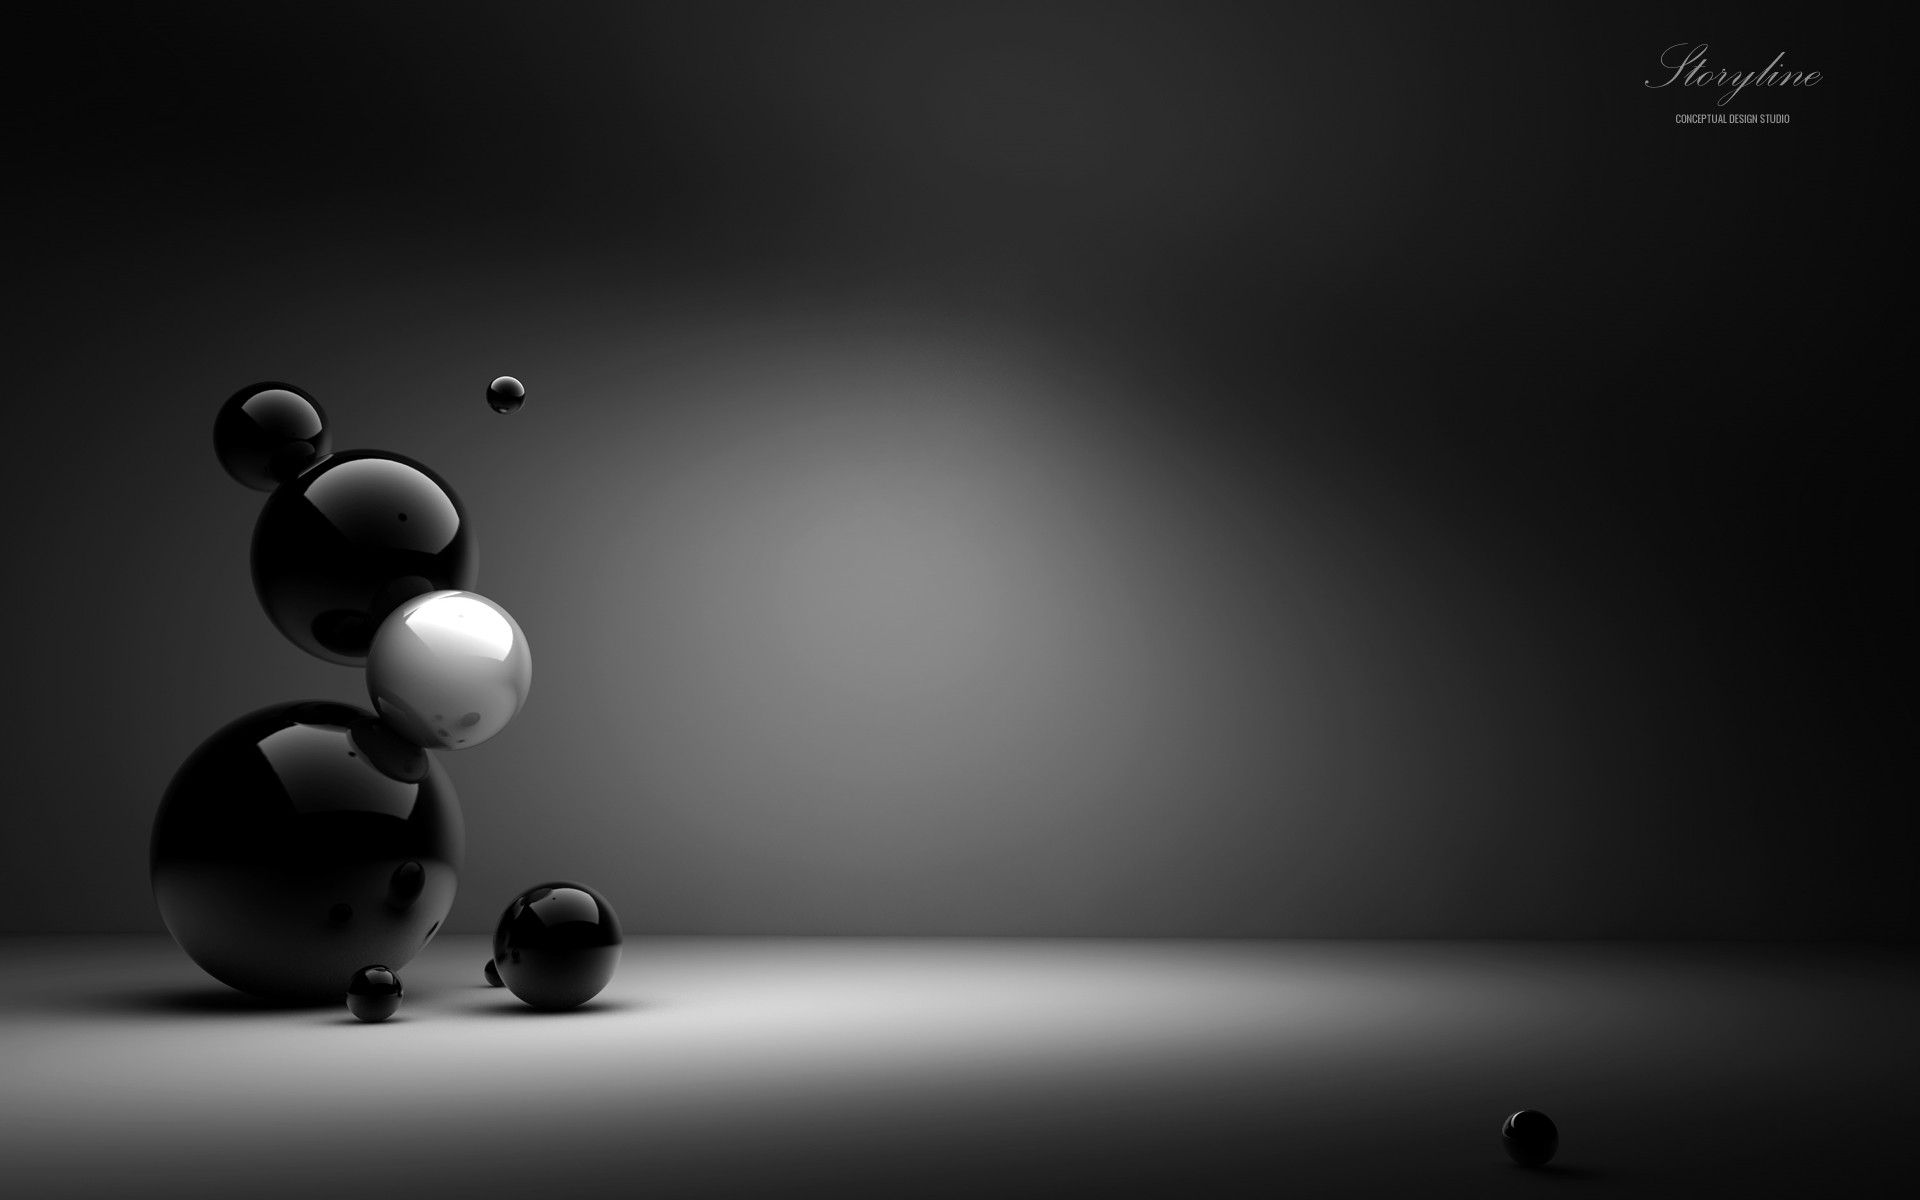 black and white graphic wallpaper (42+ images)